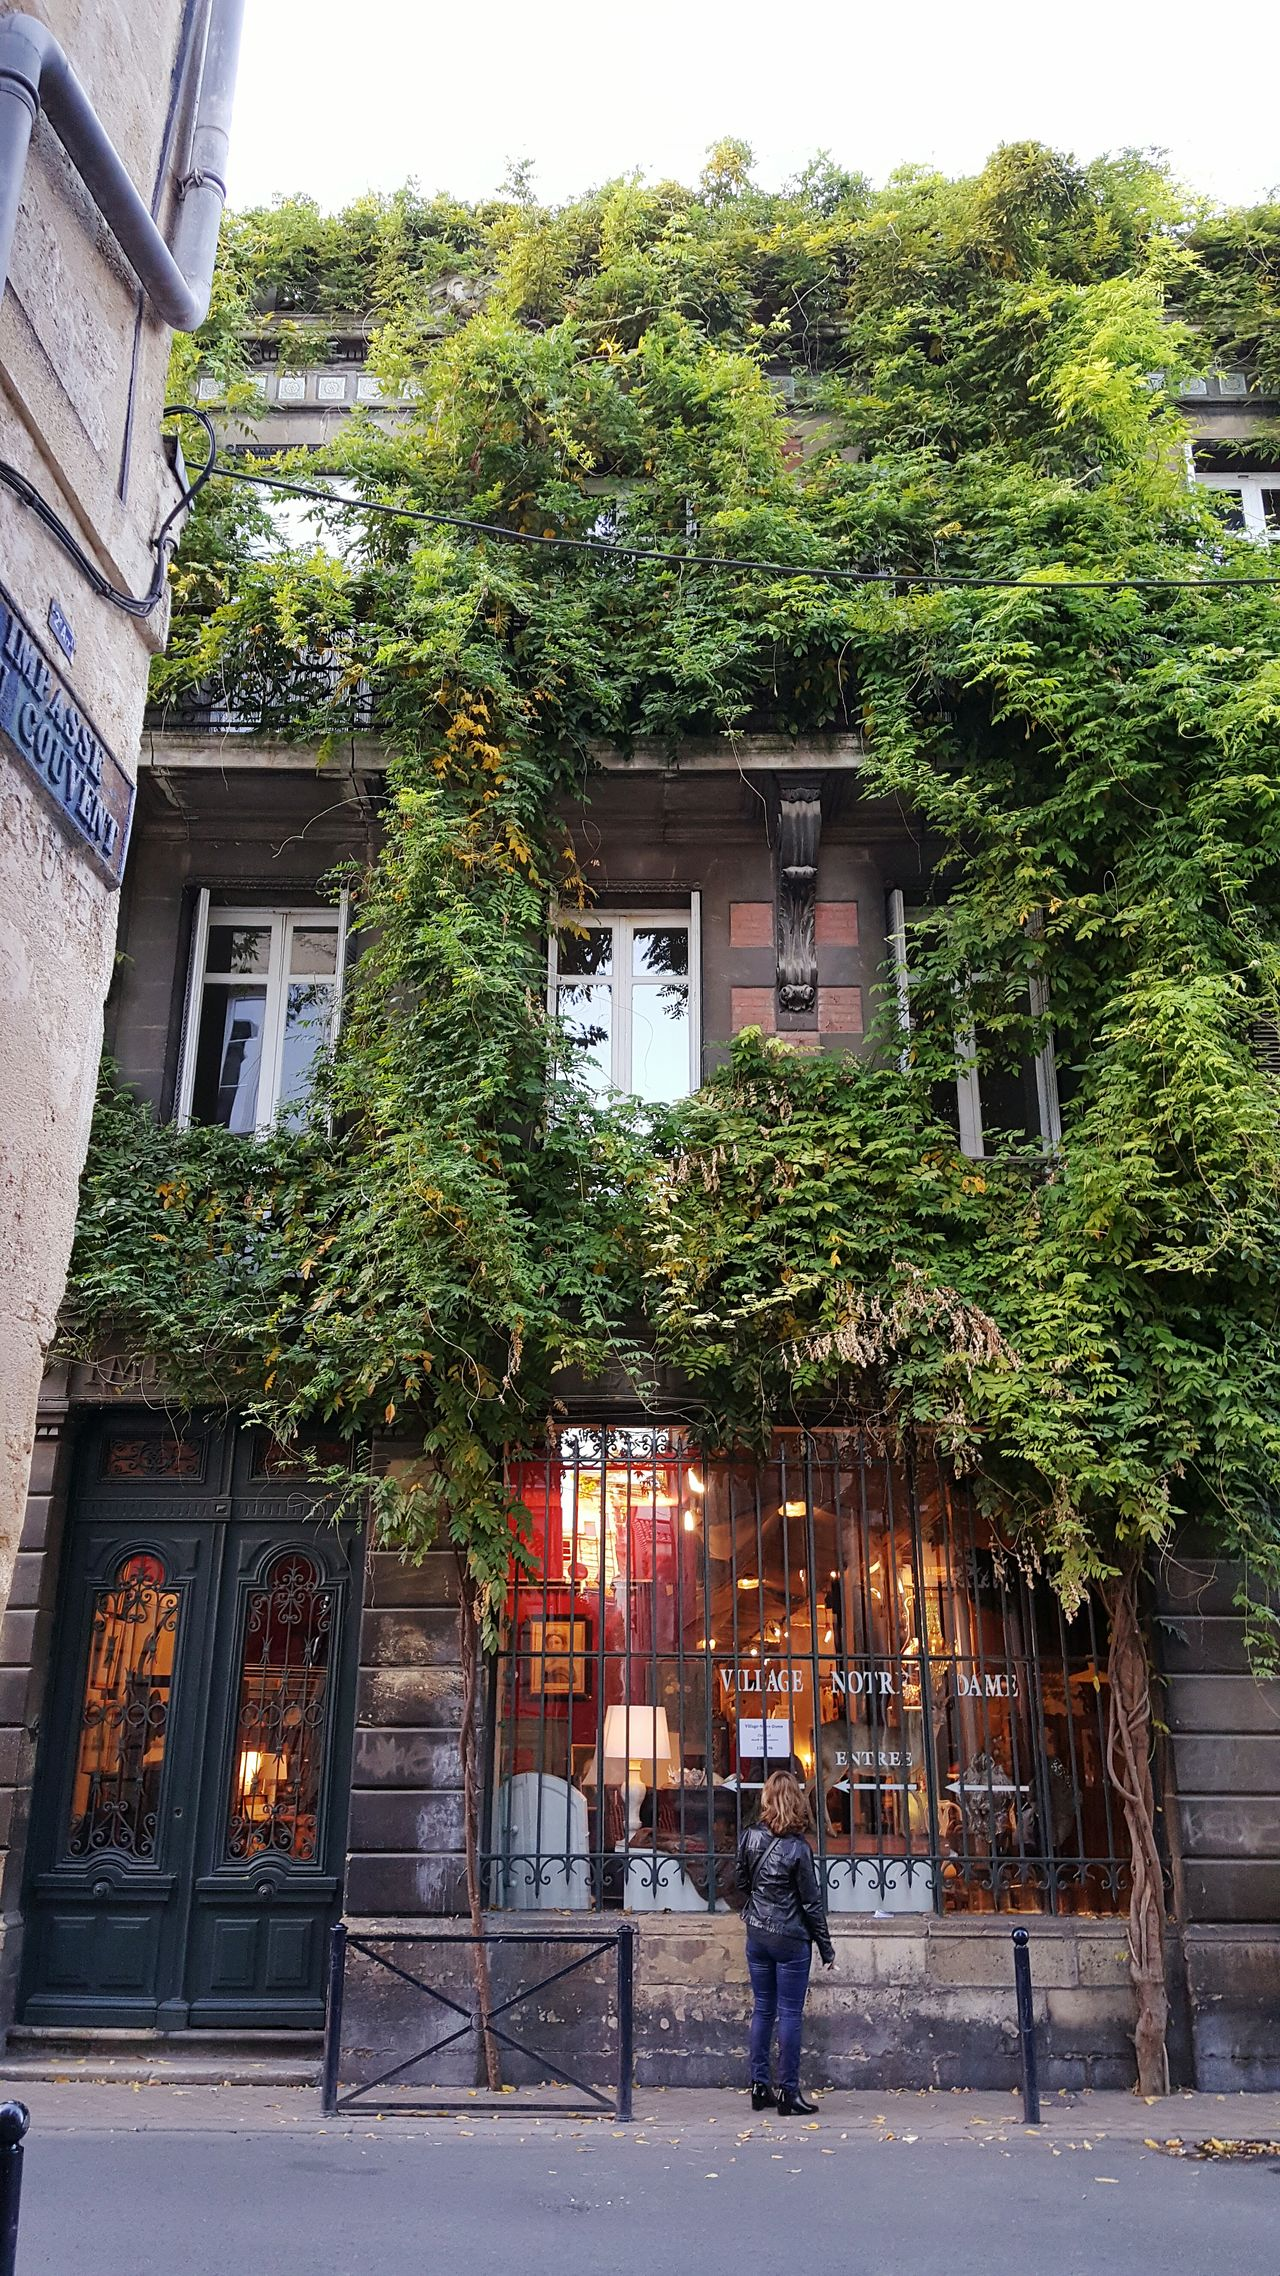 Boutique Quartier des Chartrons Architecture Building Exterior Green Color City Life Growth Outdoors Creeper Plant Nature Old Shop Shop TOWNSCAPE Cityscape Cityscapes City Life Architectural Feature Architecture_collection Architecture Façade City Street Street Photography Streetphotography